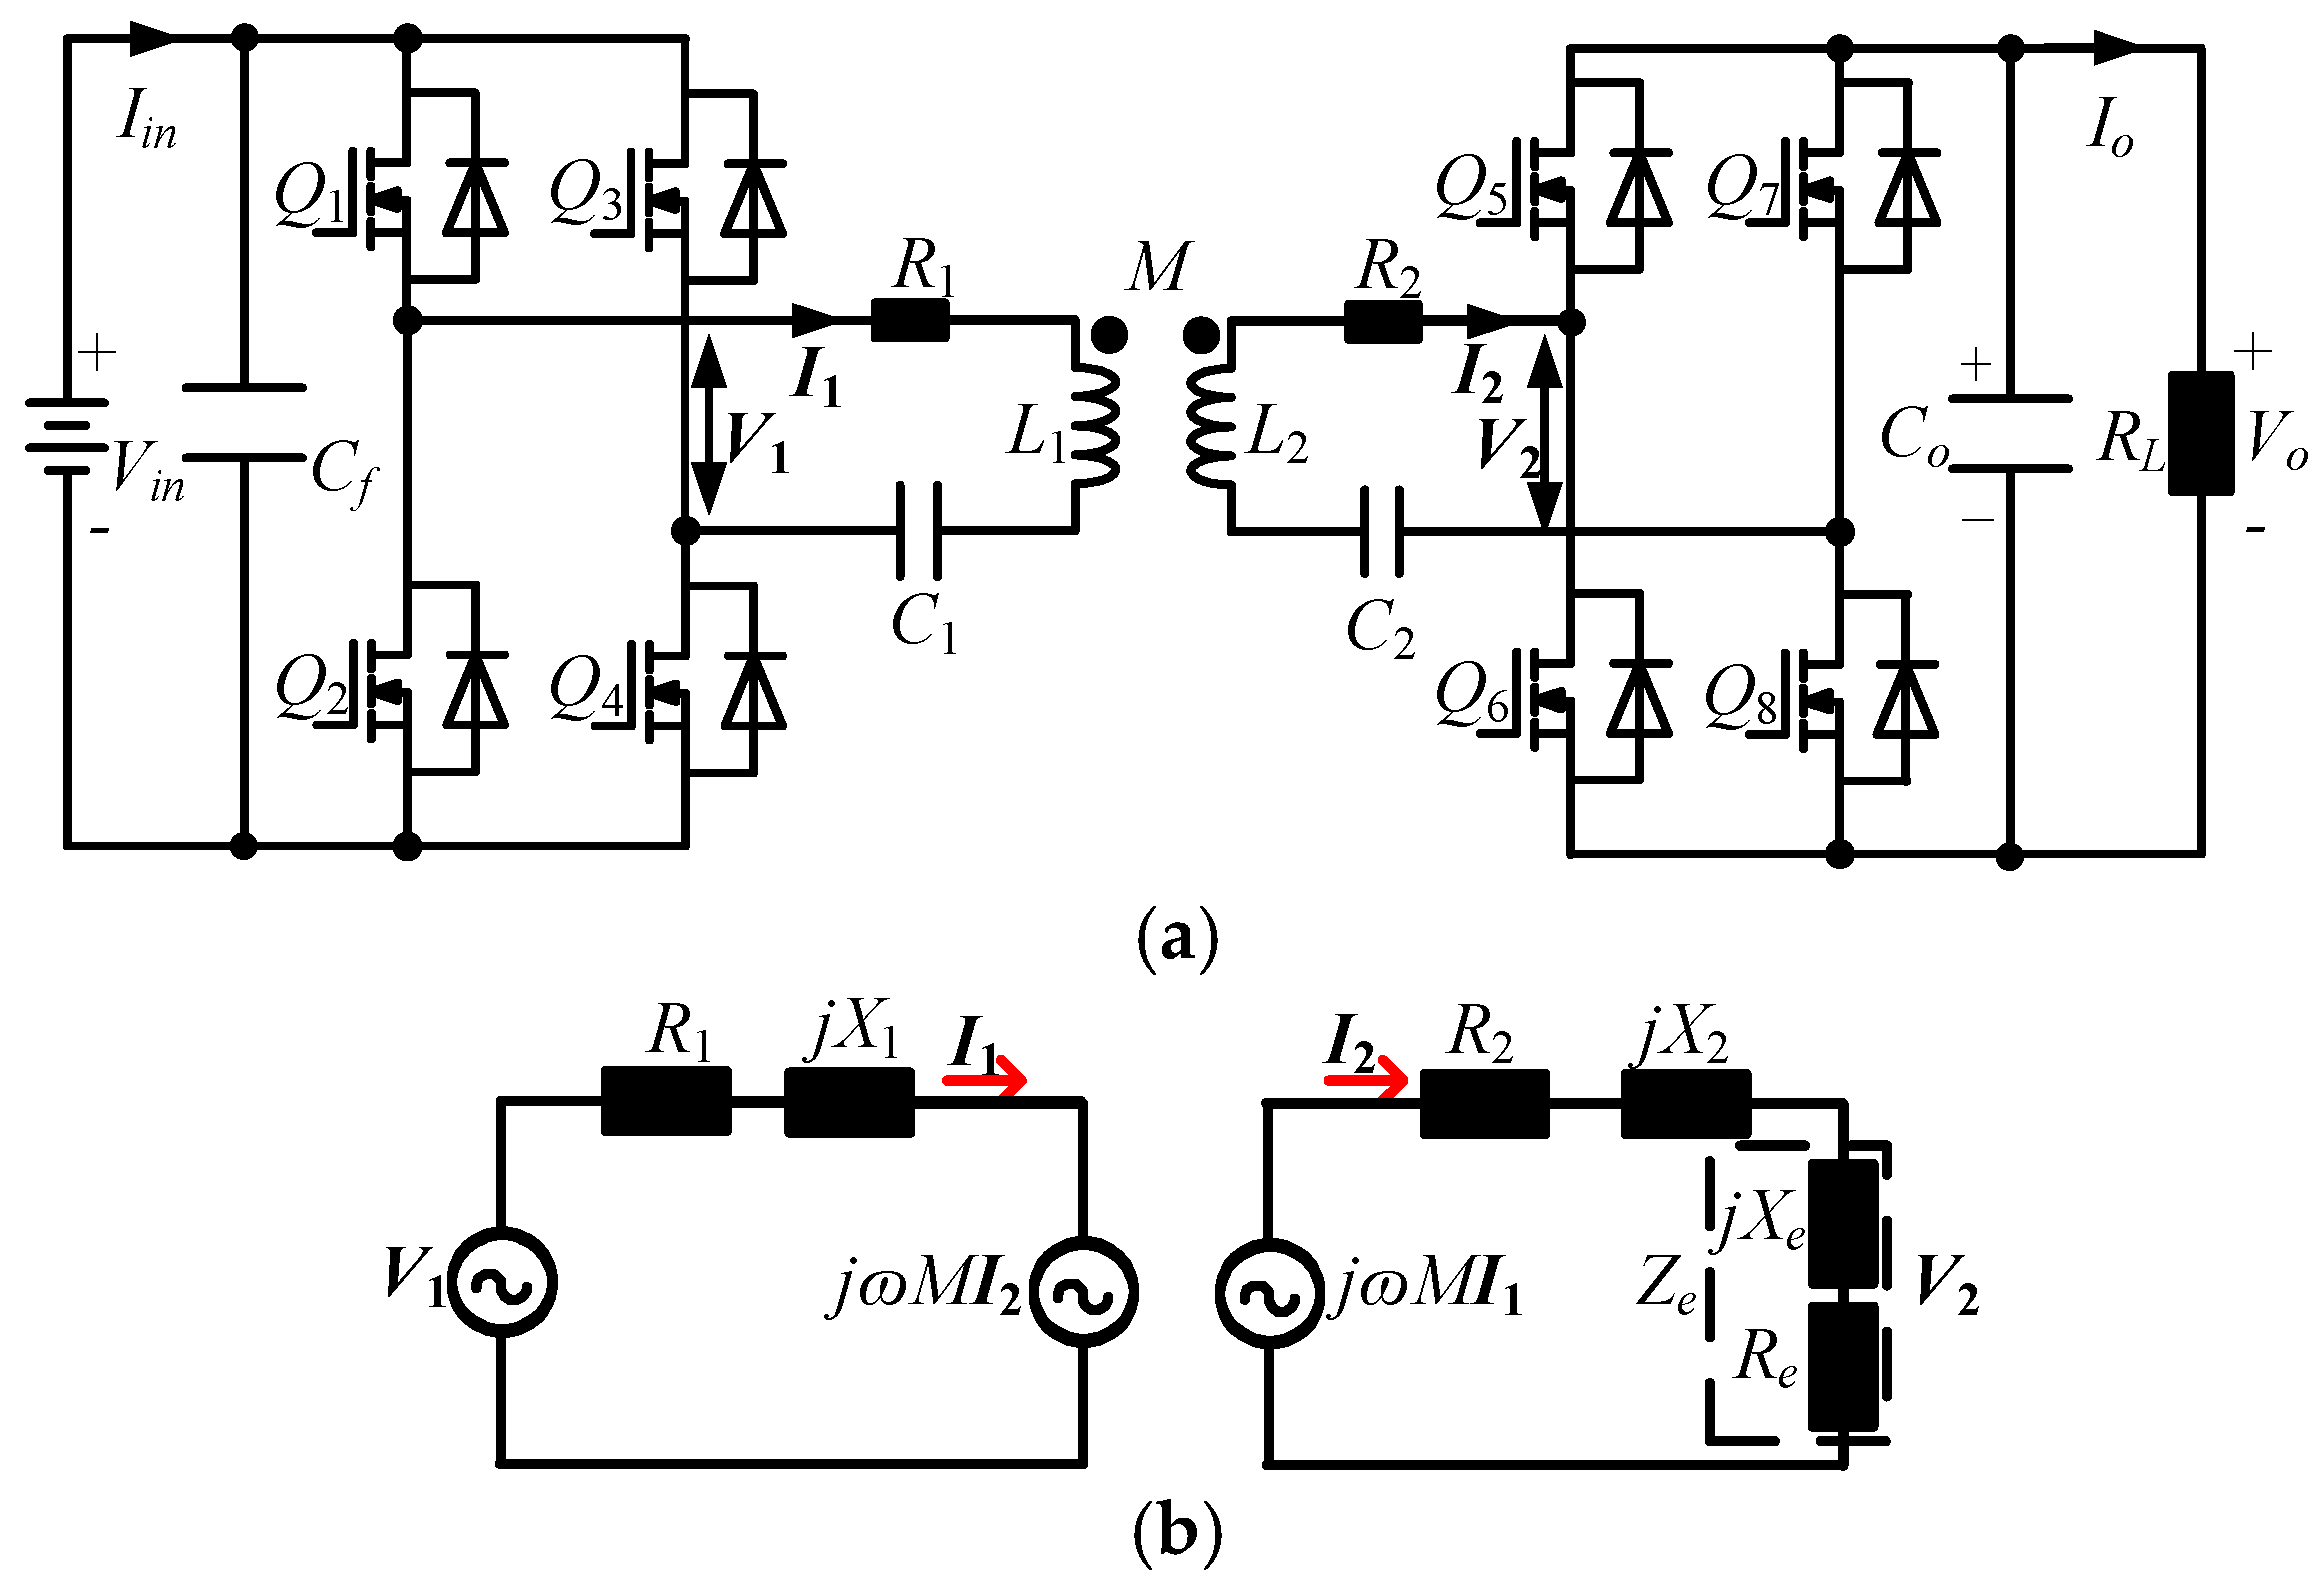 Wireless Circuit Design Video Doorbell Basiccircuit Diagram Energies Free Full Text Analysis And Of A Power 2323x1593